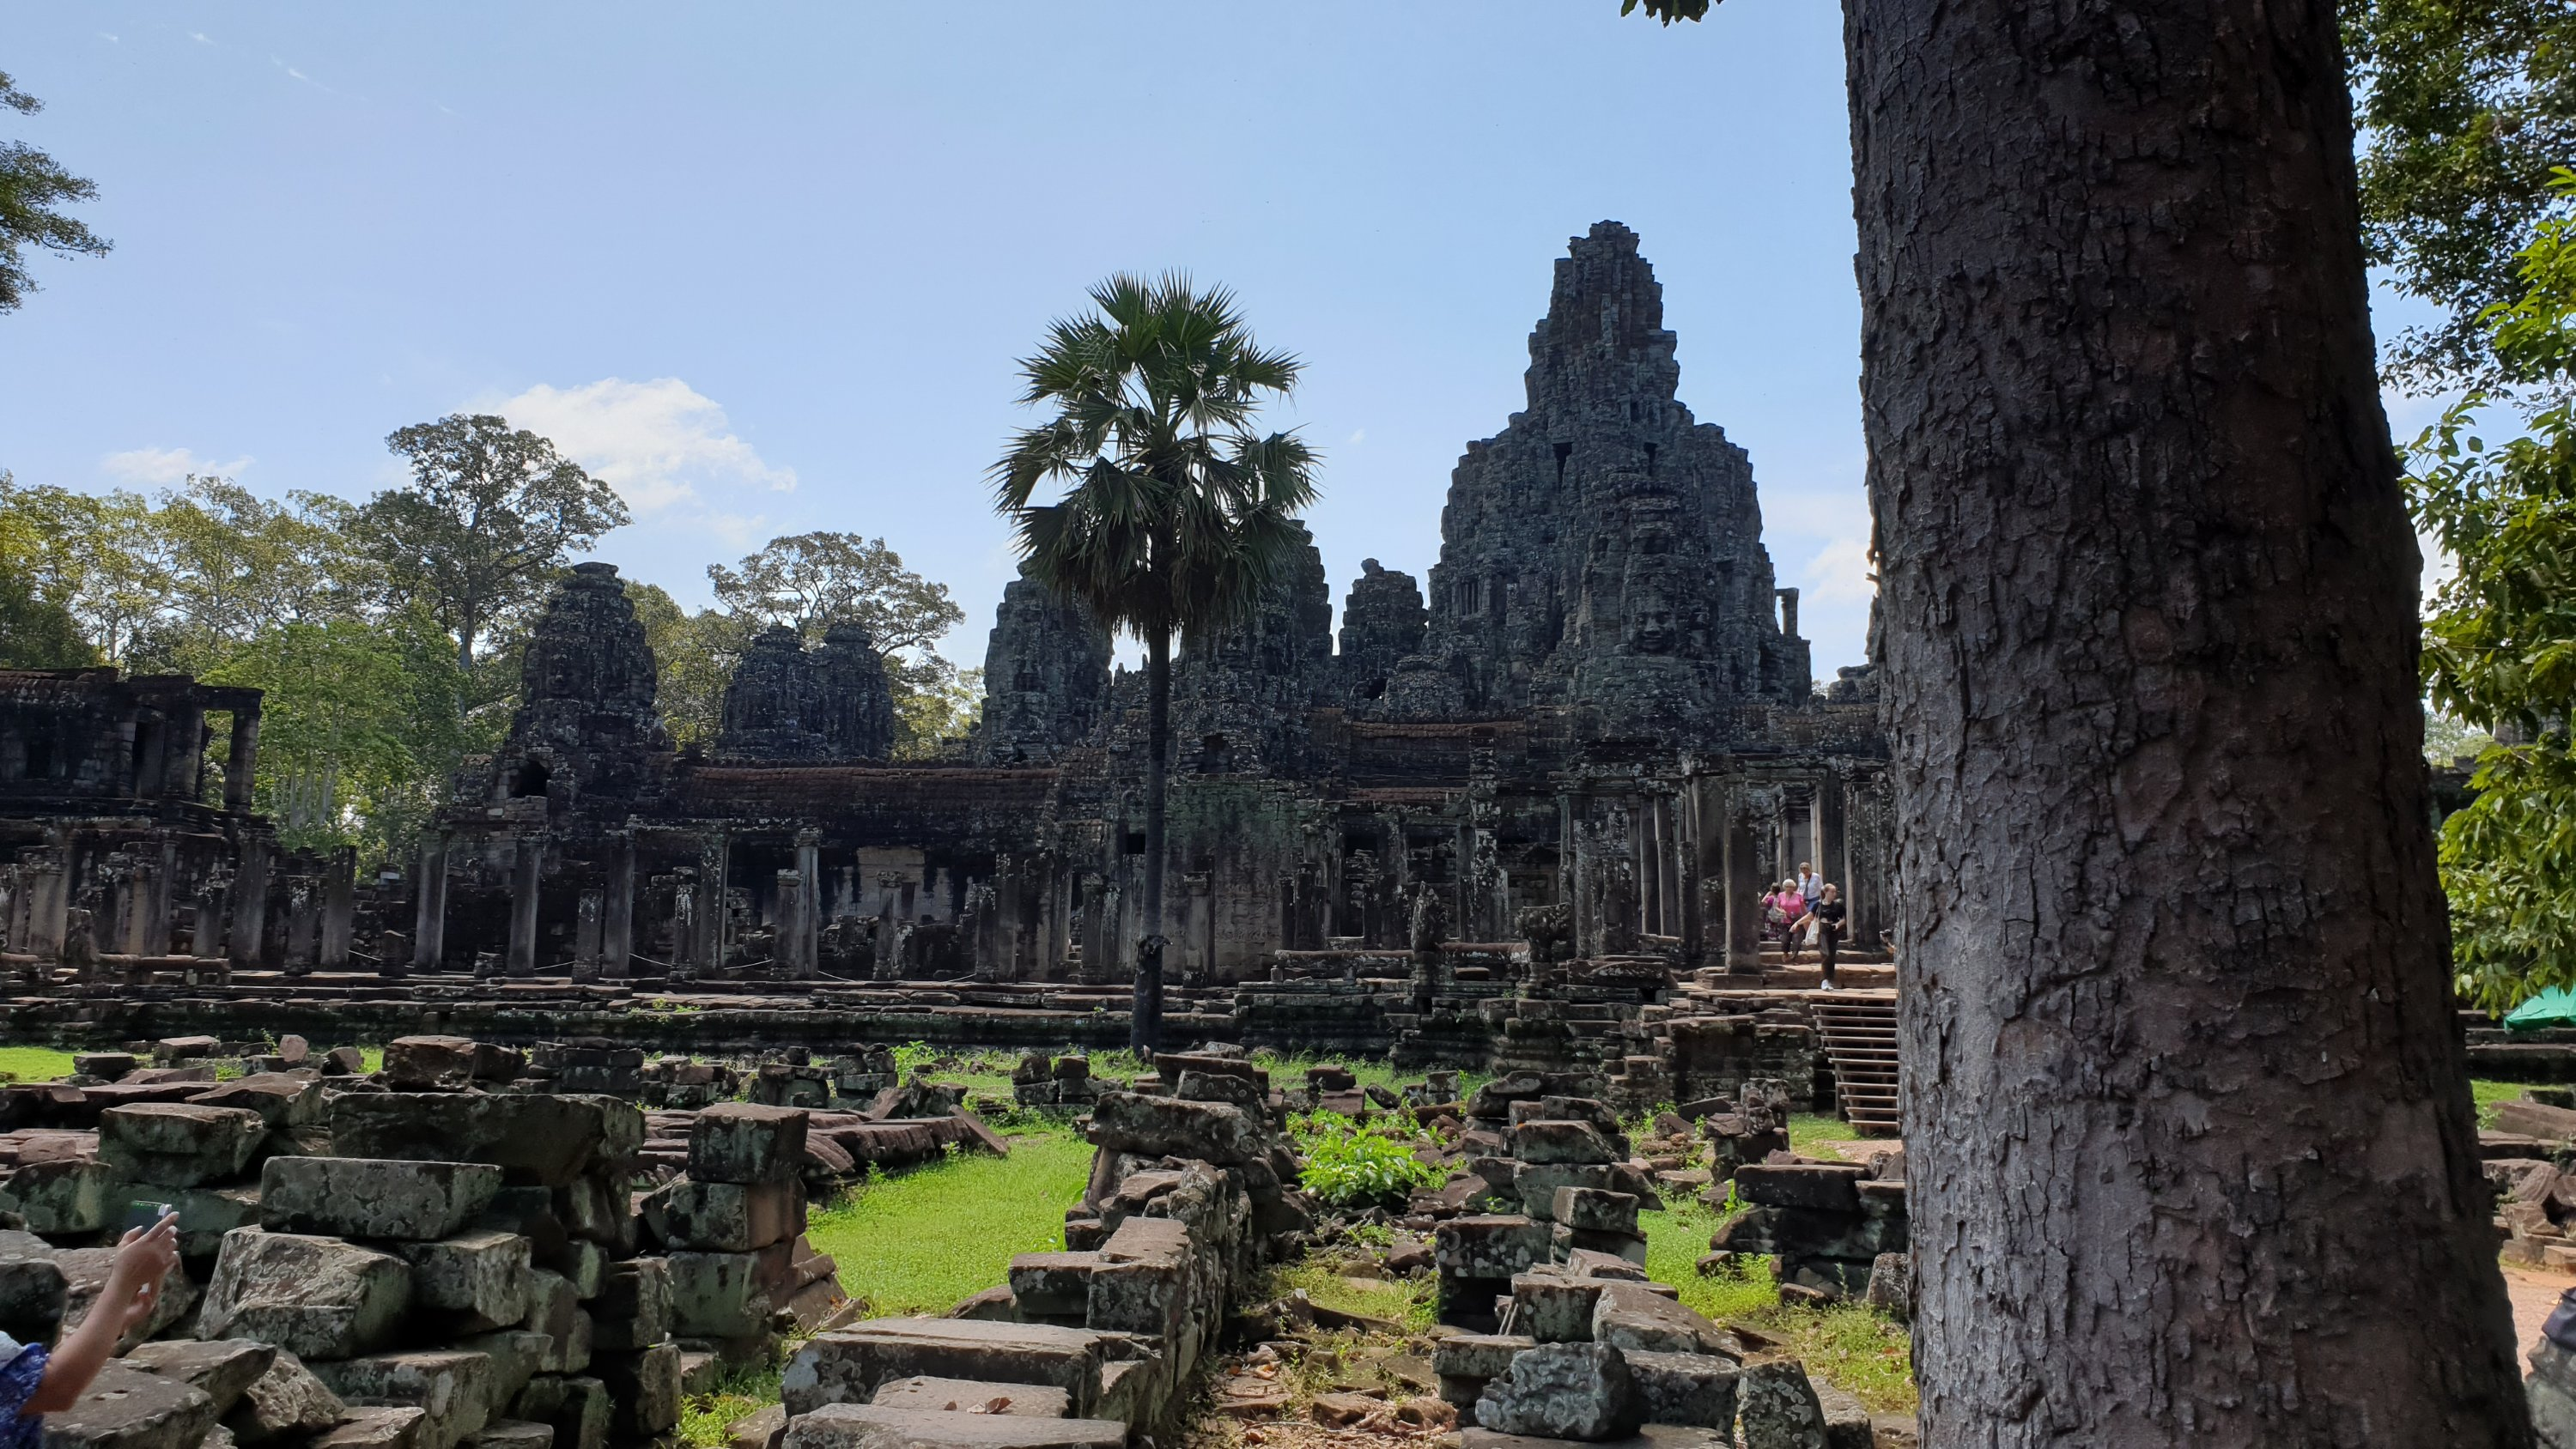 Another temple near Angkor Wat